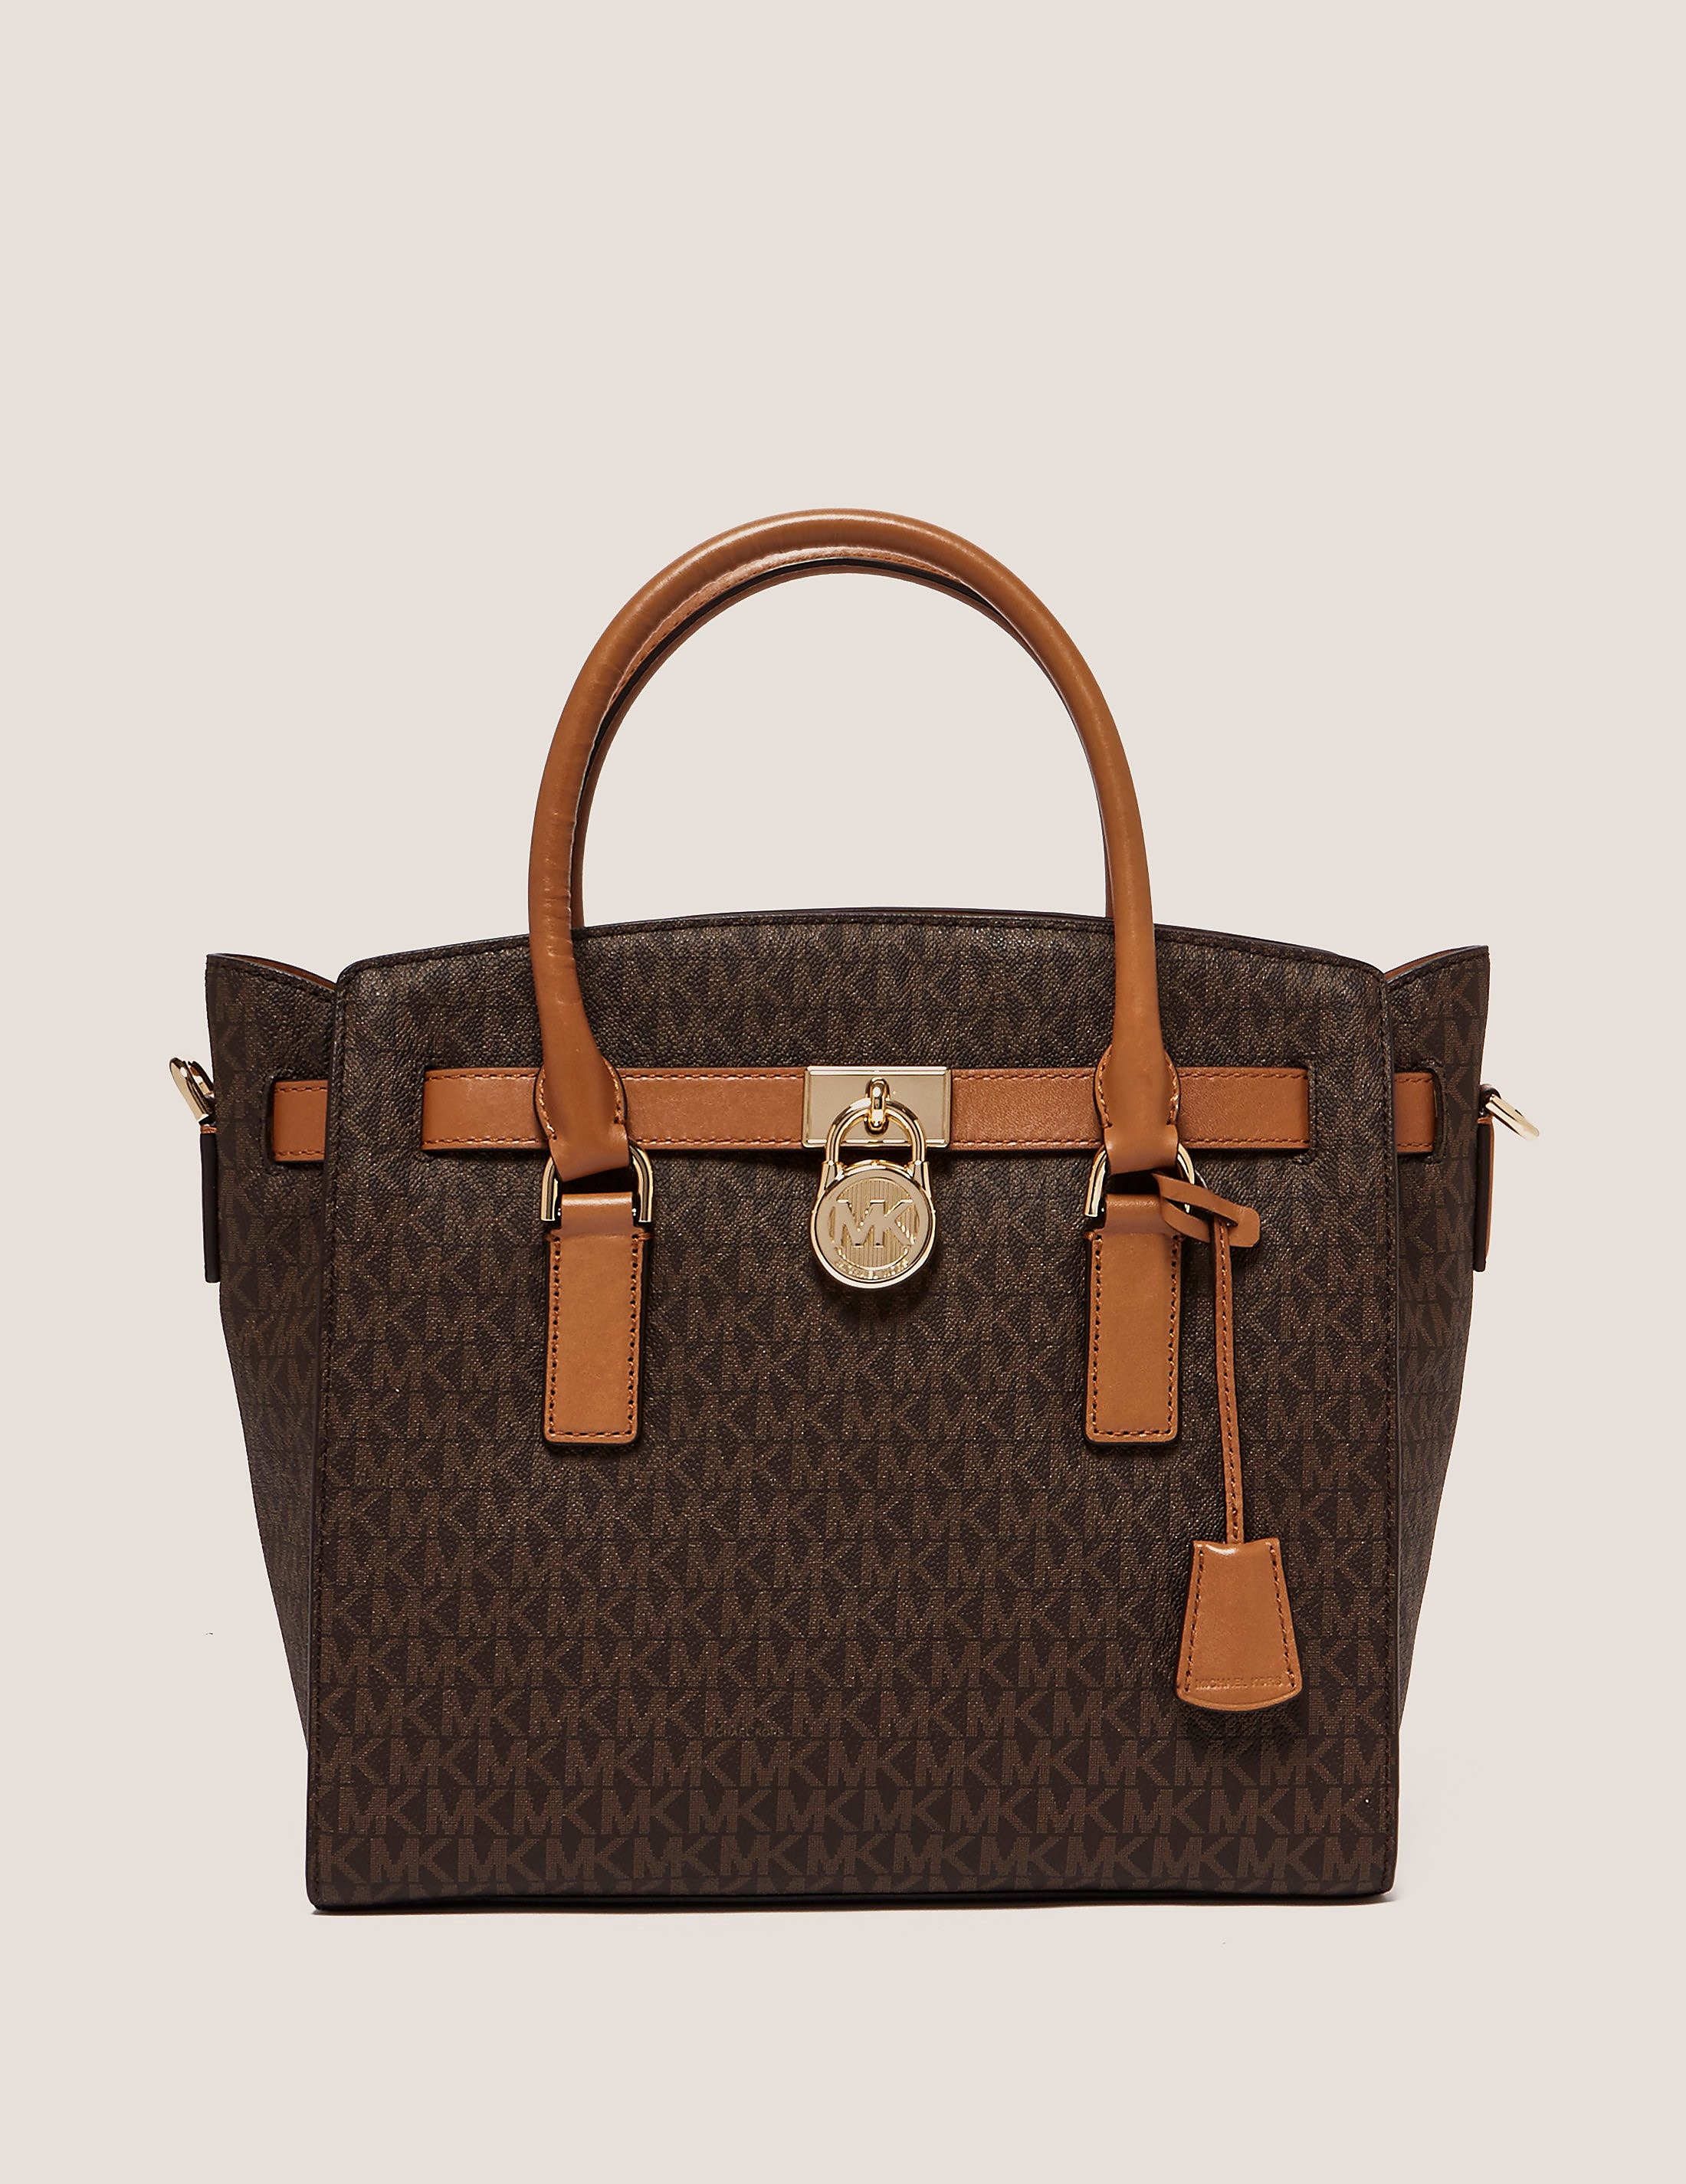 Michael Kors Hamilton Large Bag